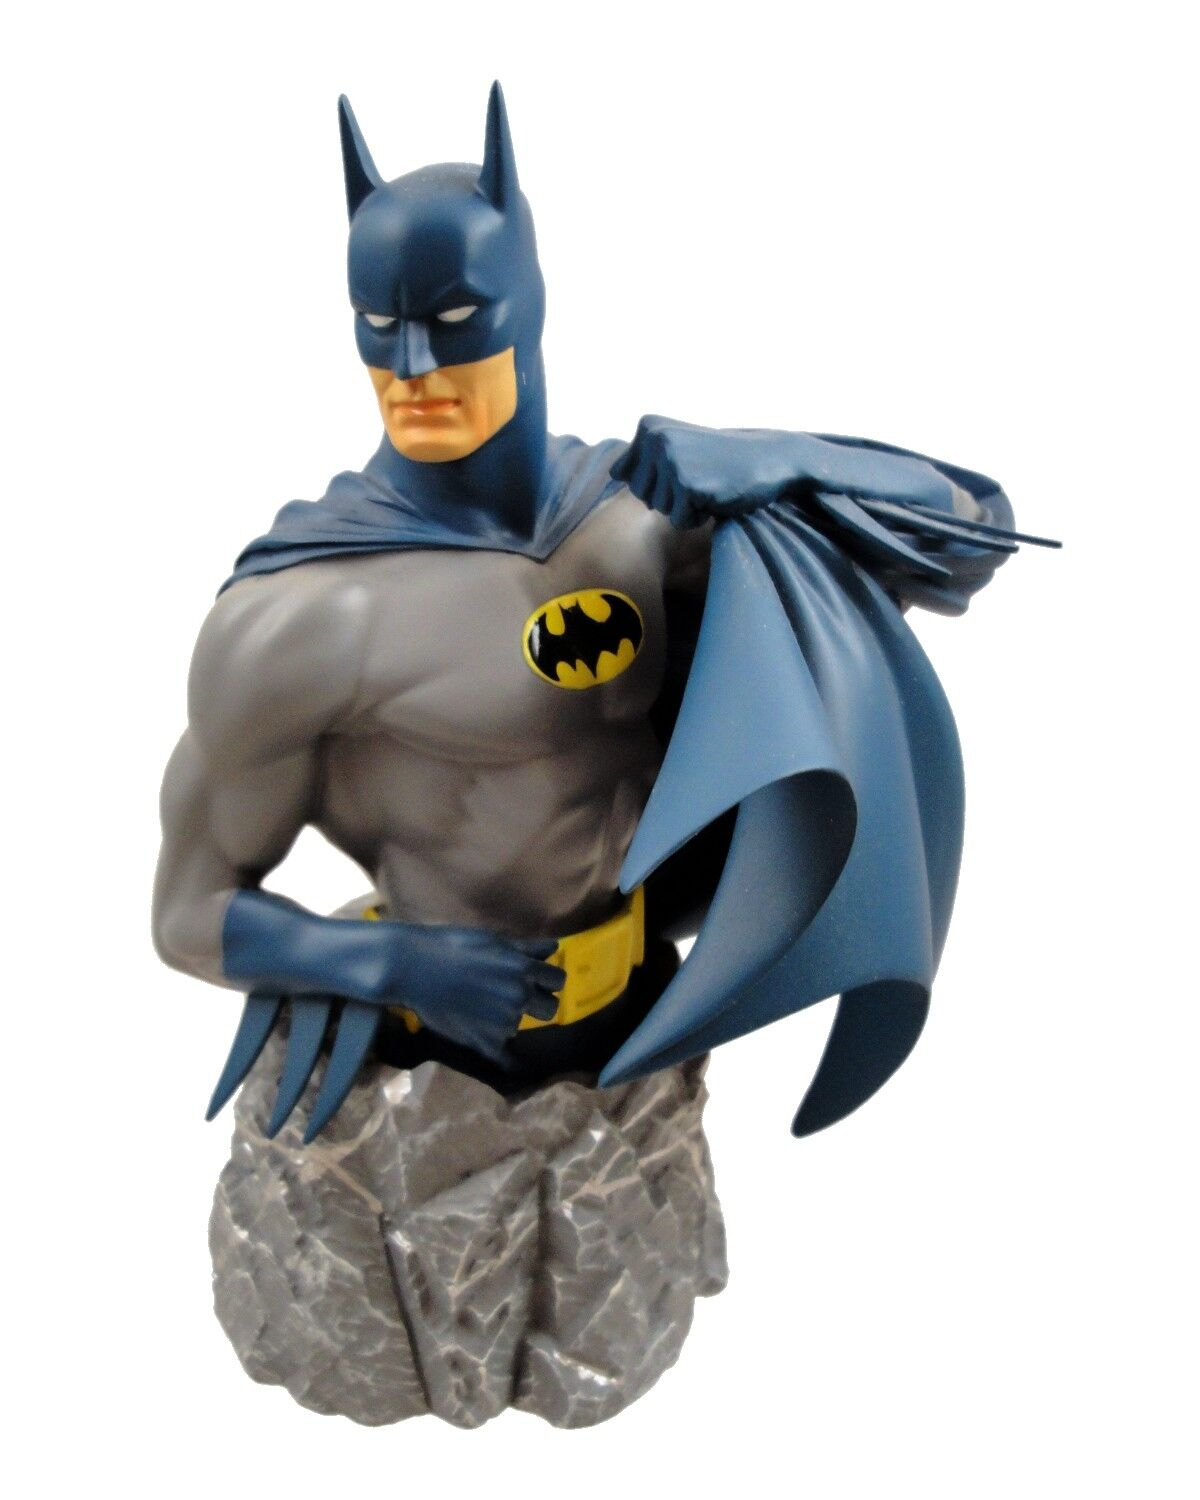 "DC Collectibles Buste Batman ""The Caped Crusader"" Crusader"" Crusader"" 741bae"